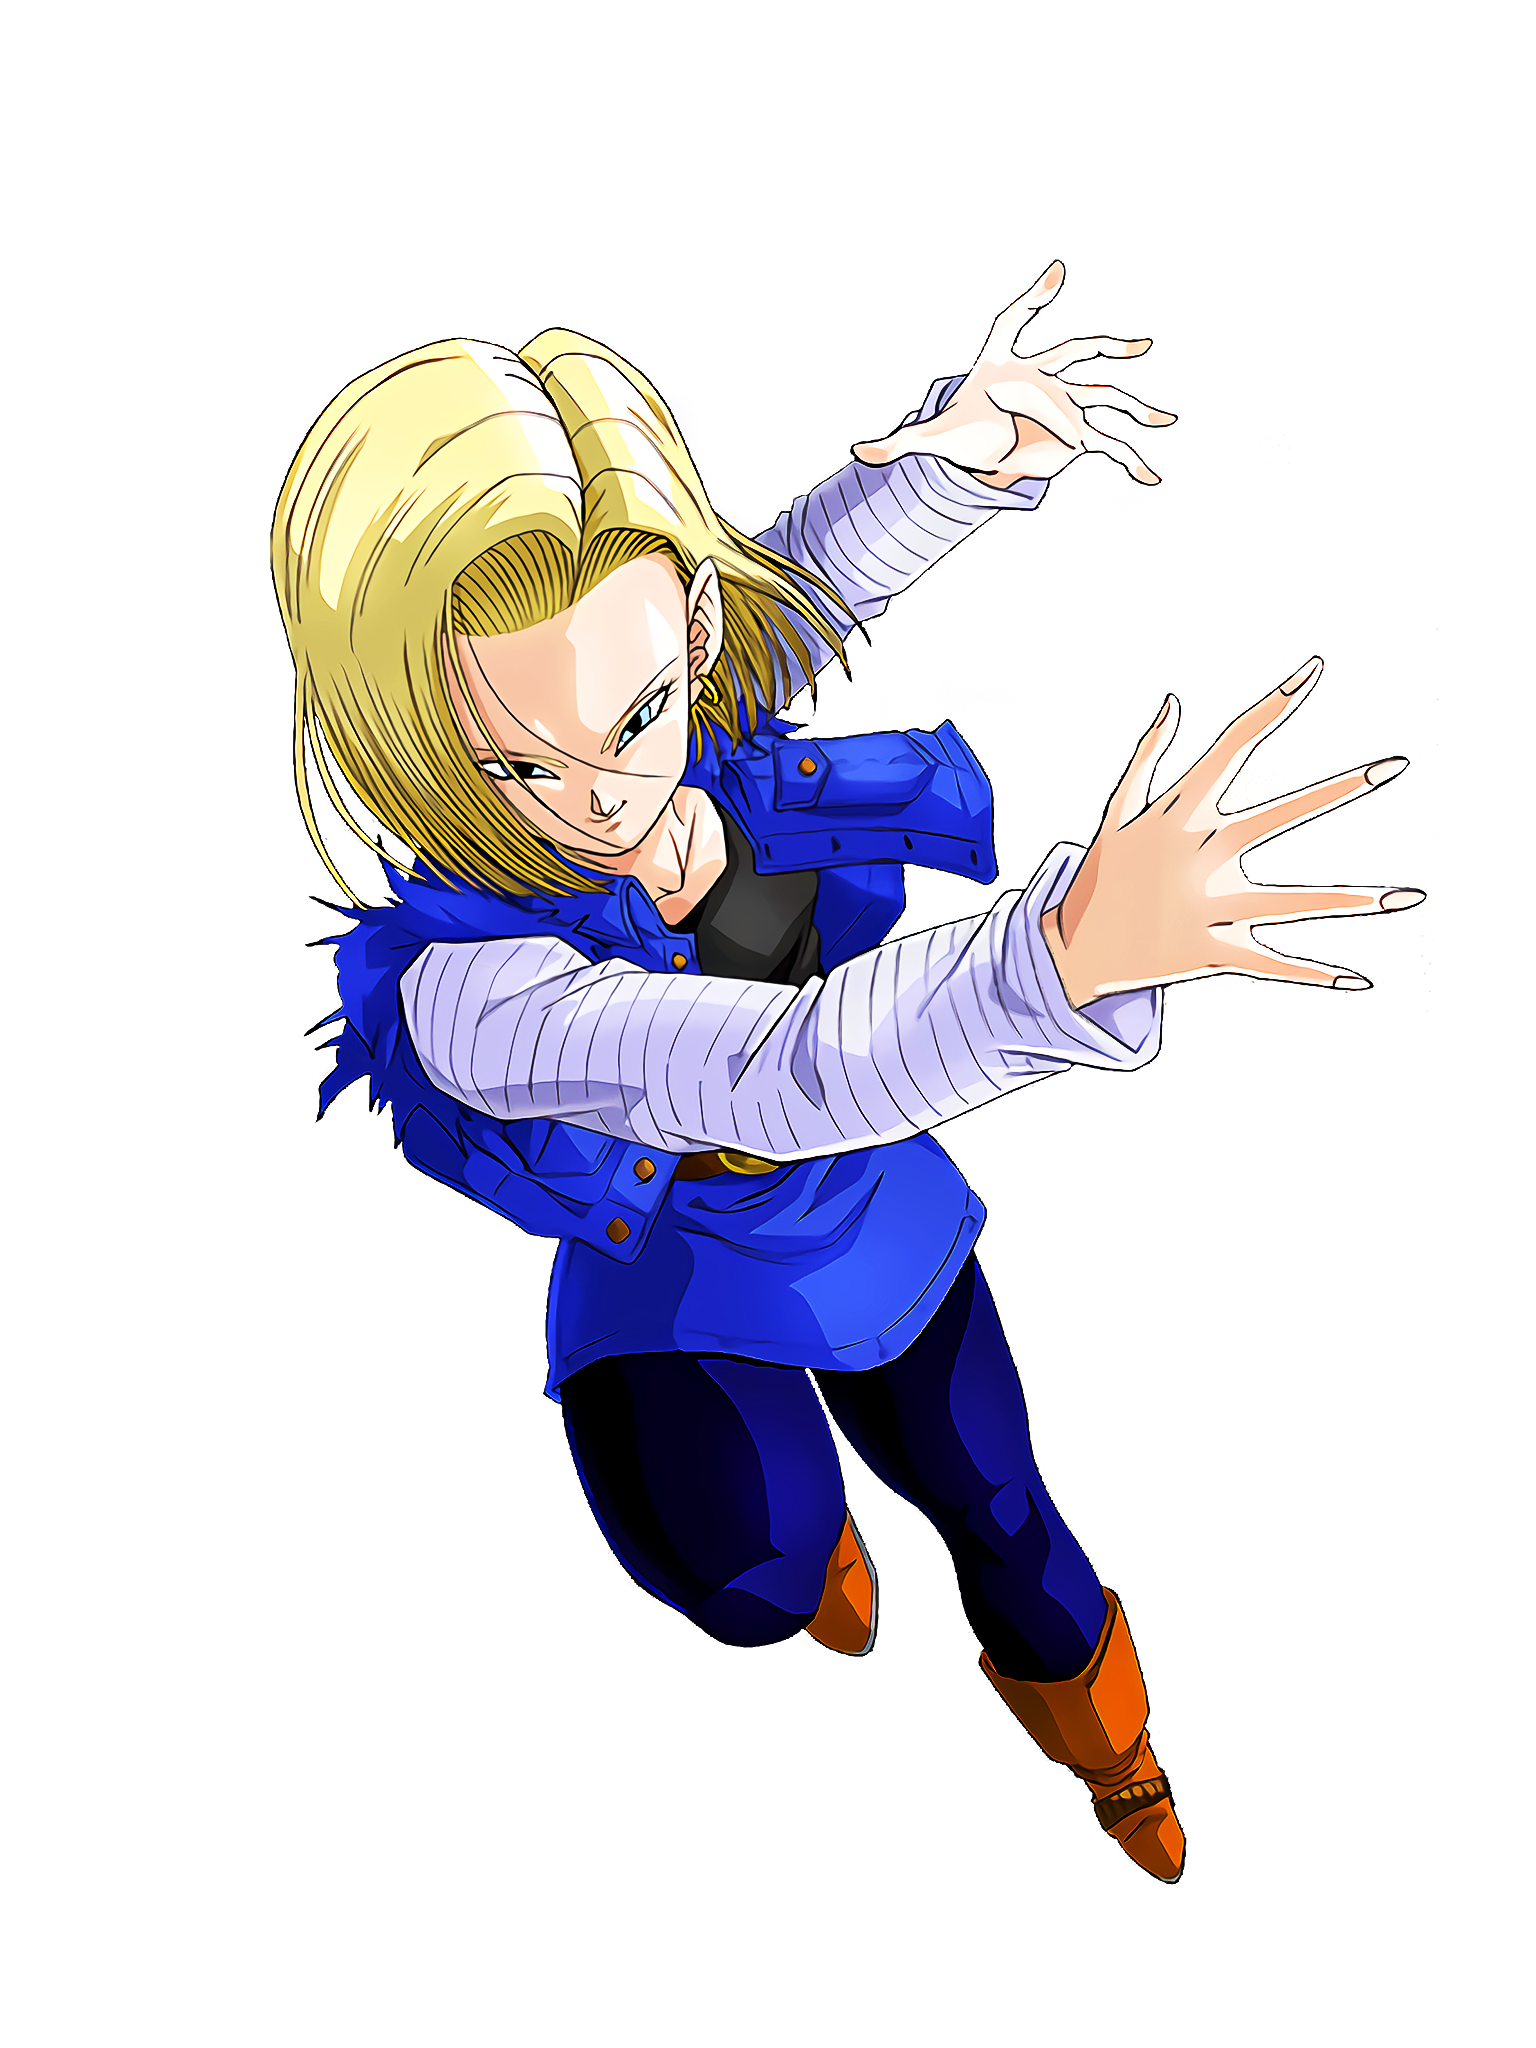 A Ghostly Devastation Android 18 Future Render (Dragon Ball Z Dokkan Battle) .png